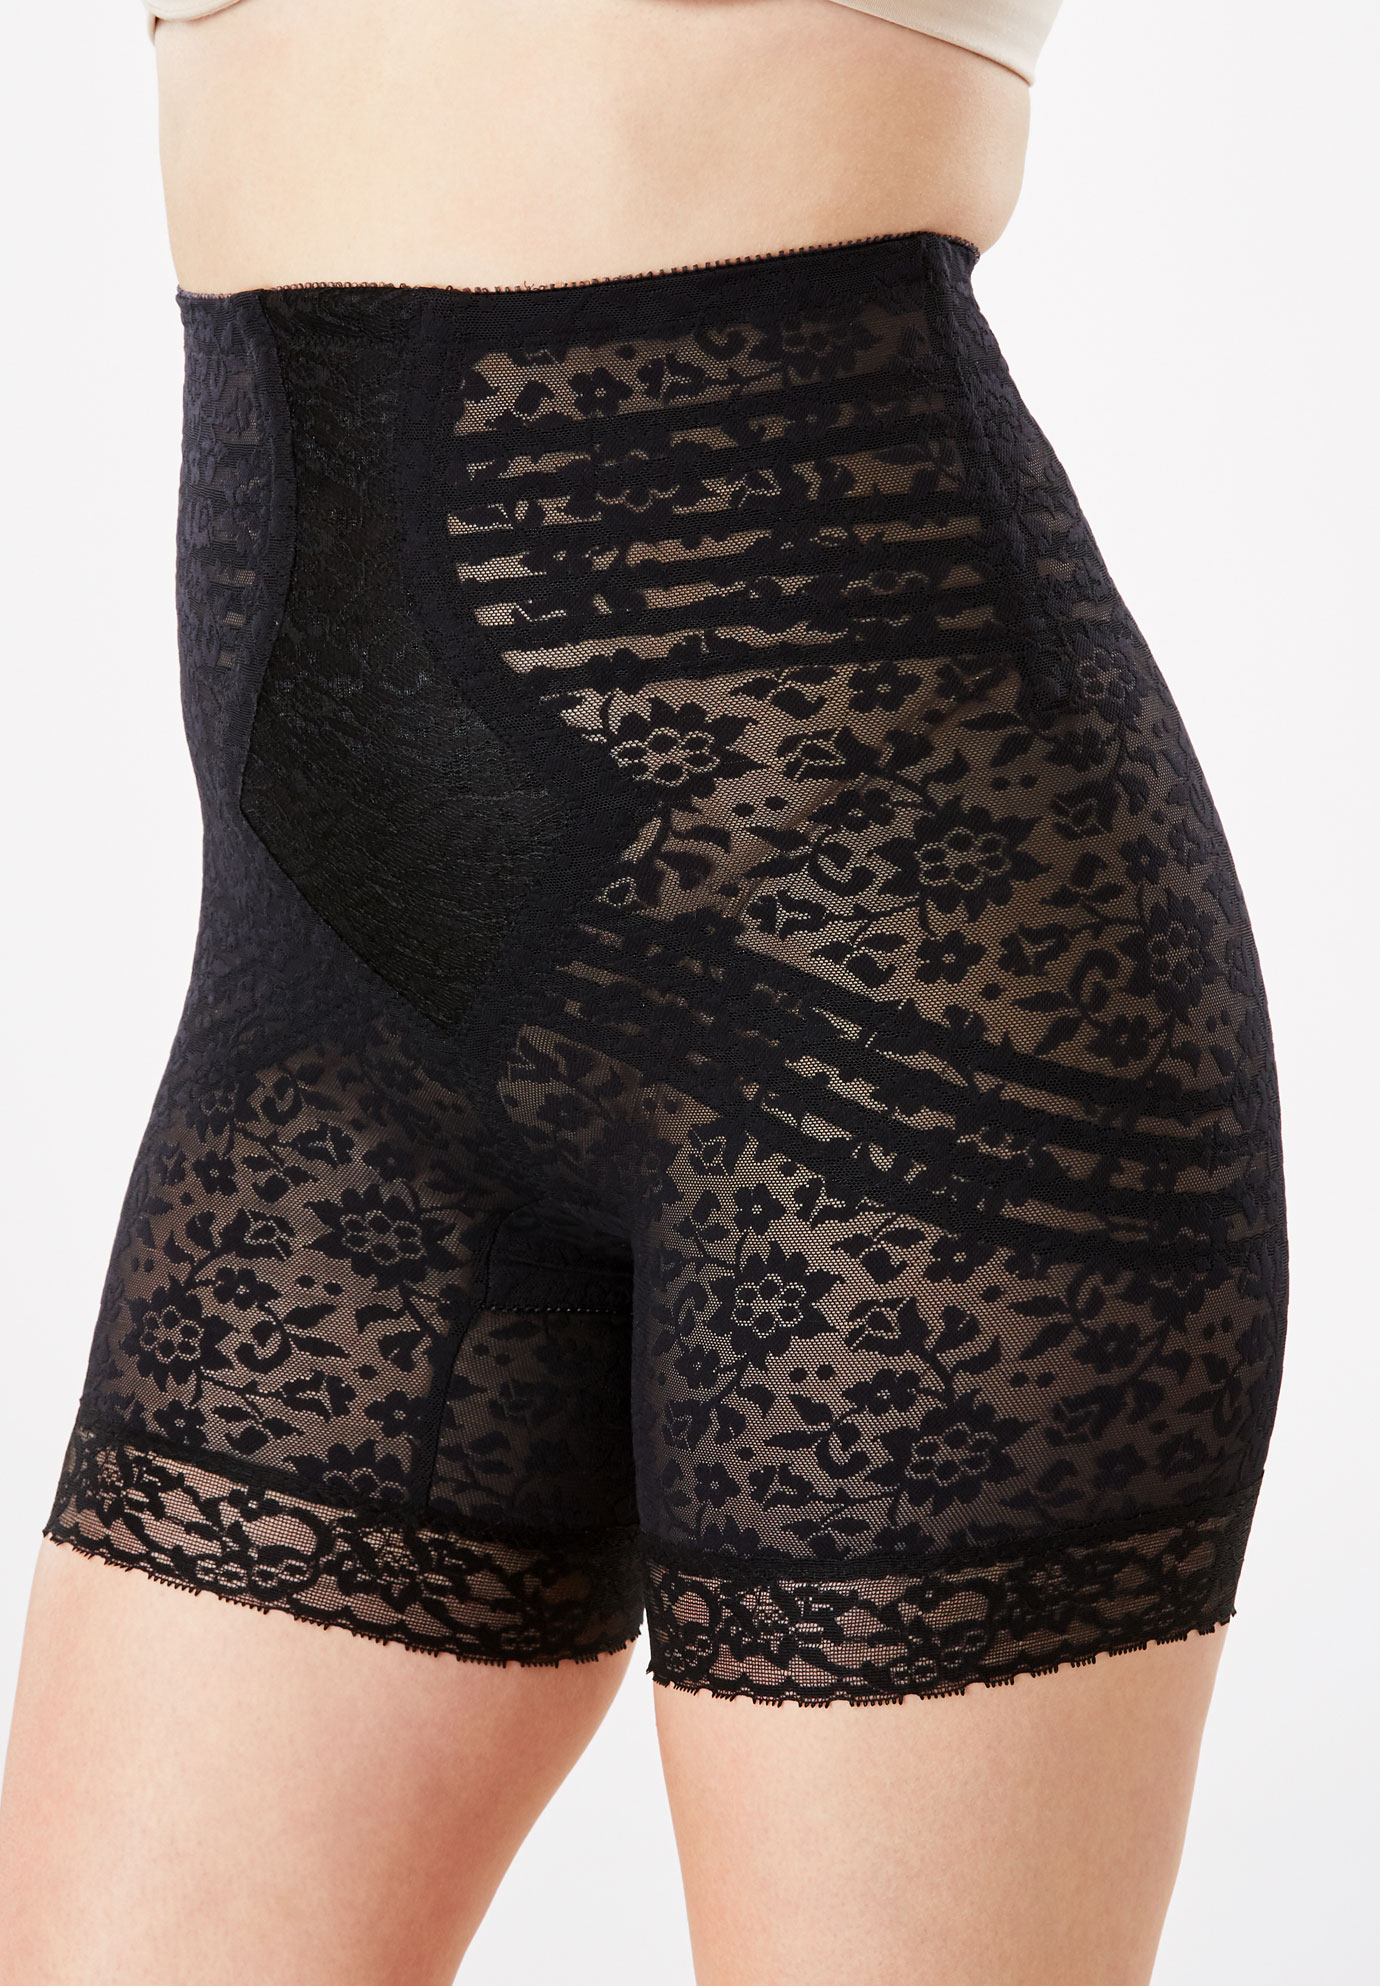 Jacquard Lace Shaping Thigh Slimmer by Rago®,